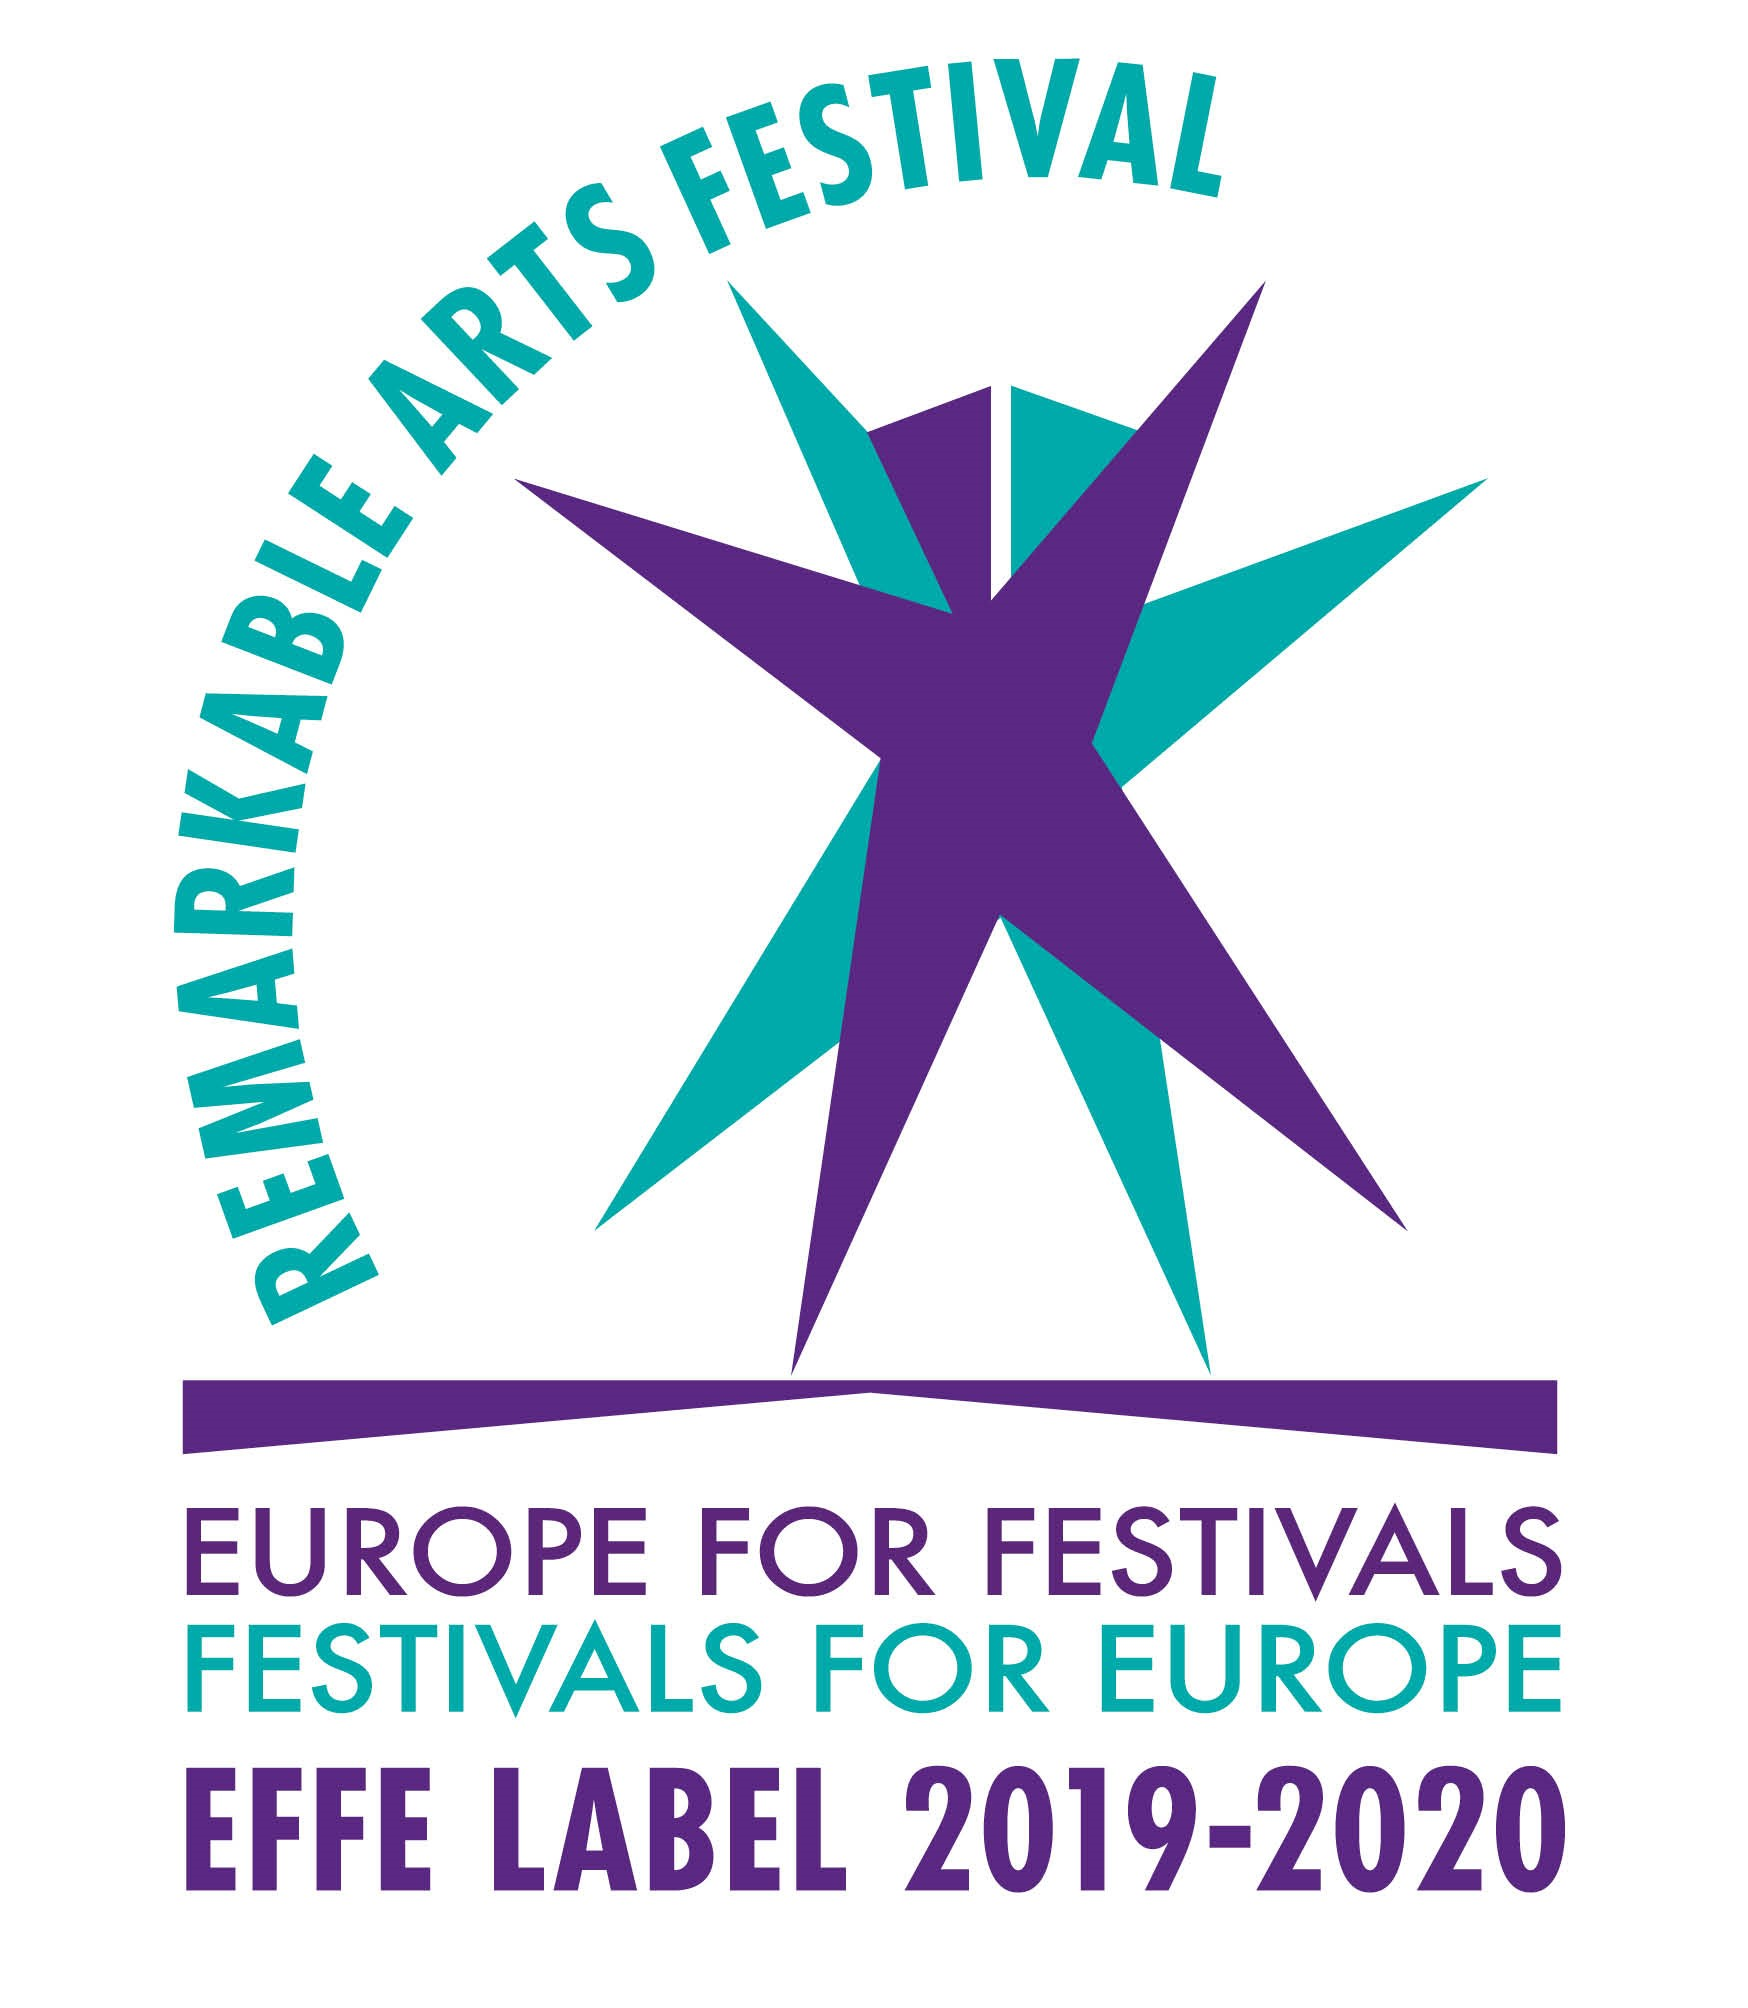 EFFE_Label_rgb_20192020.jpg